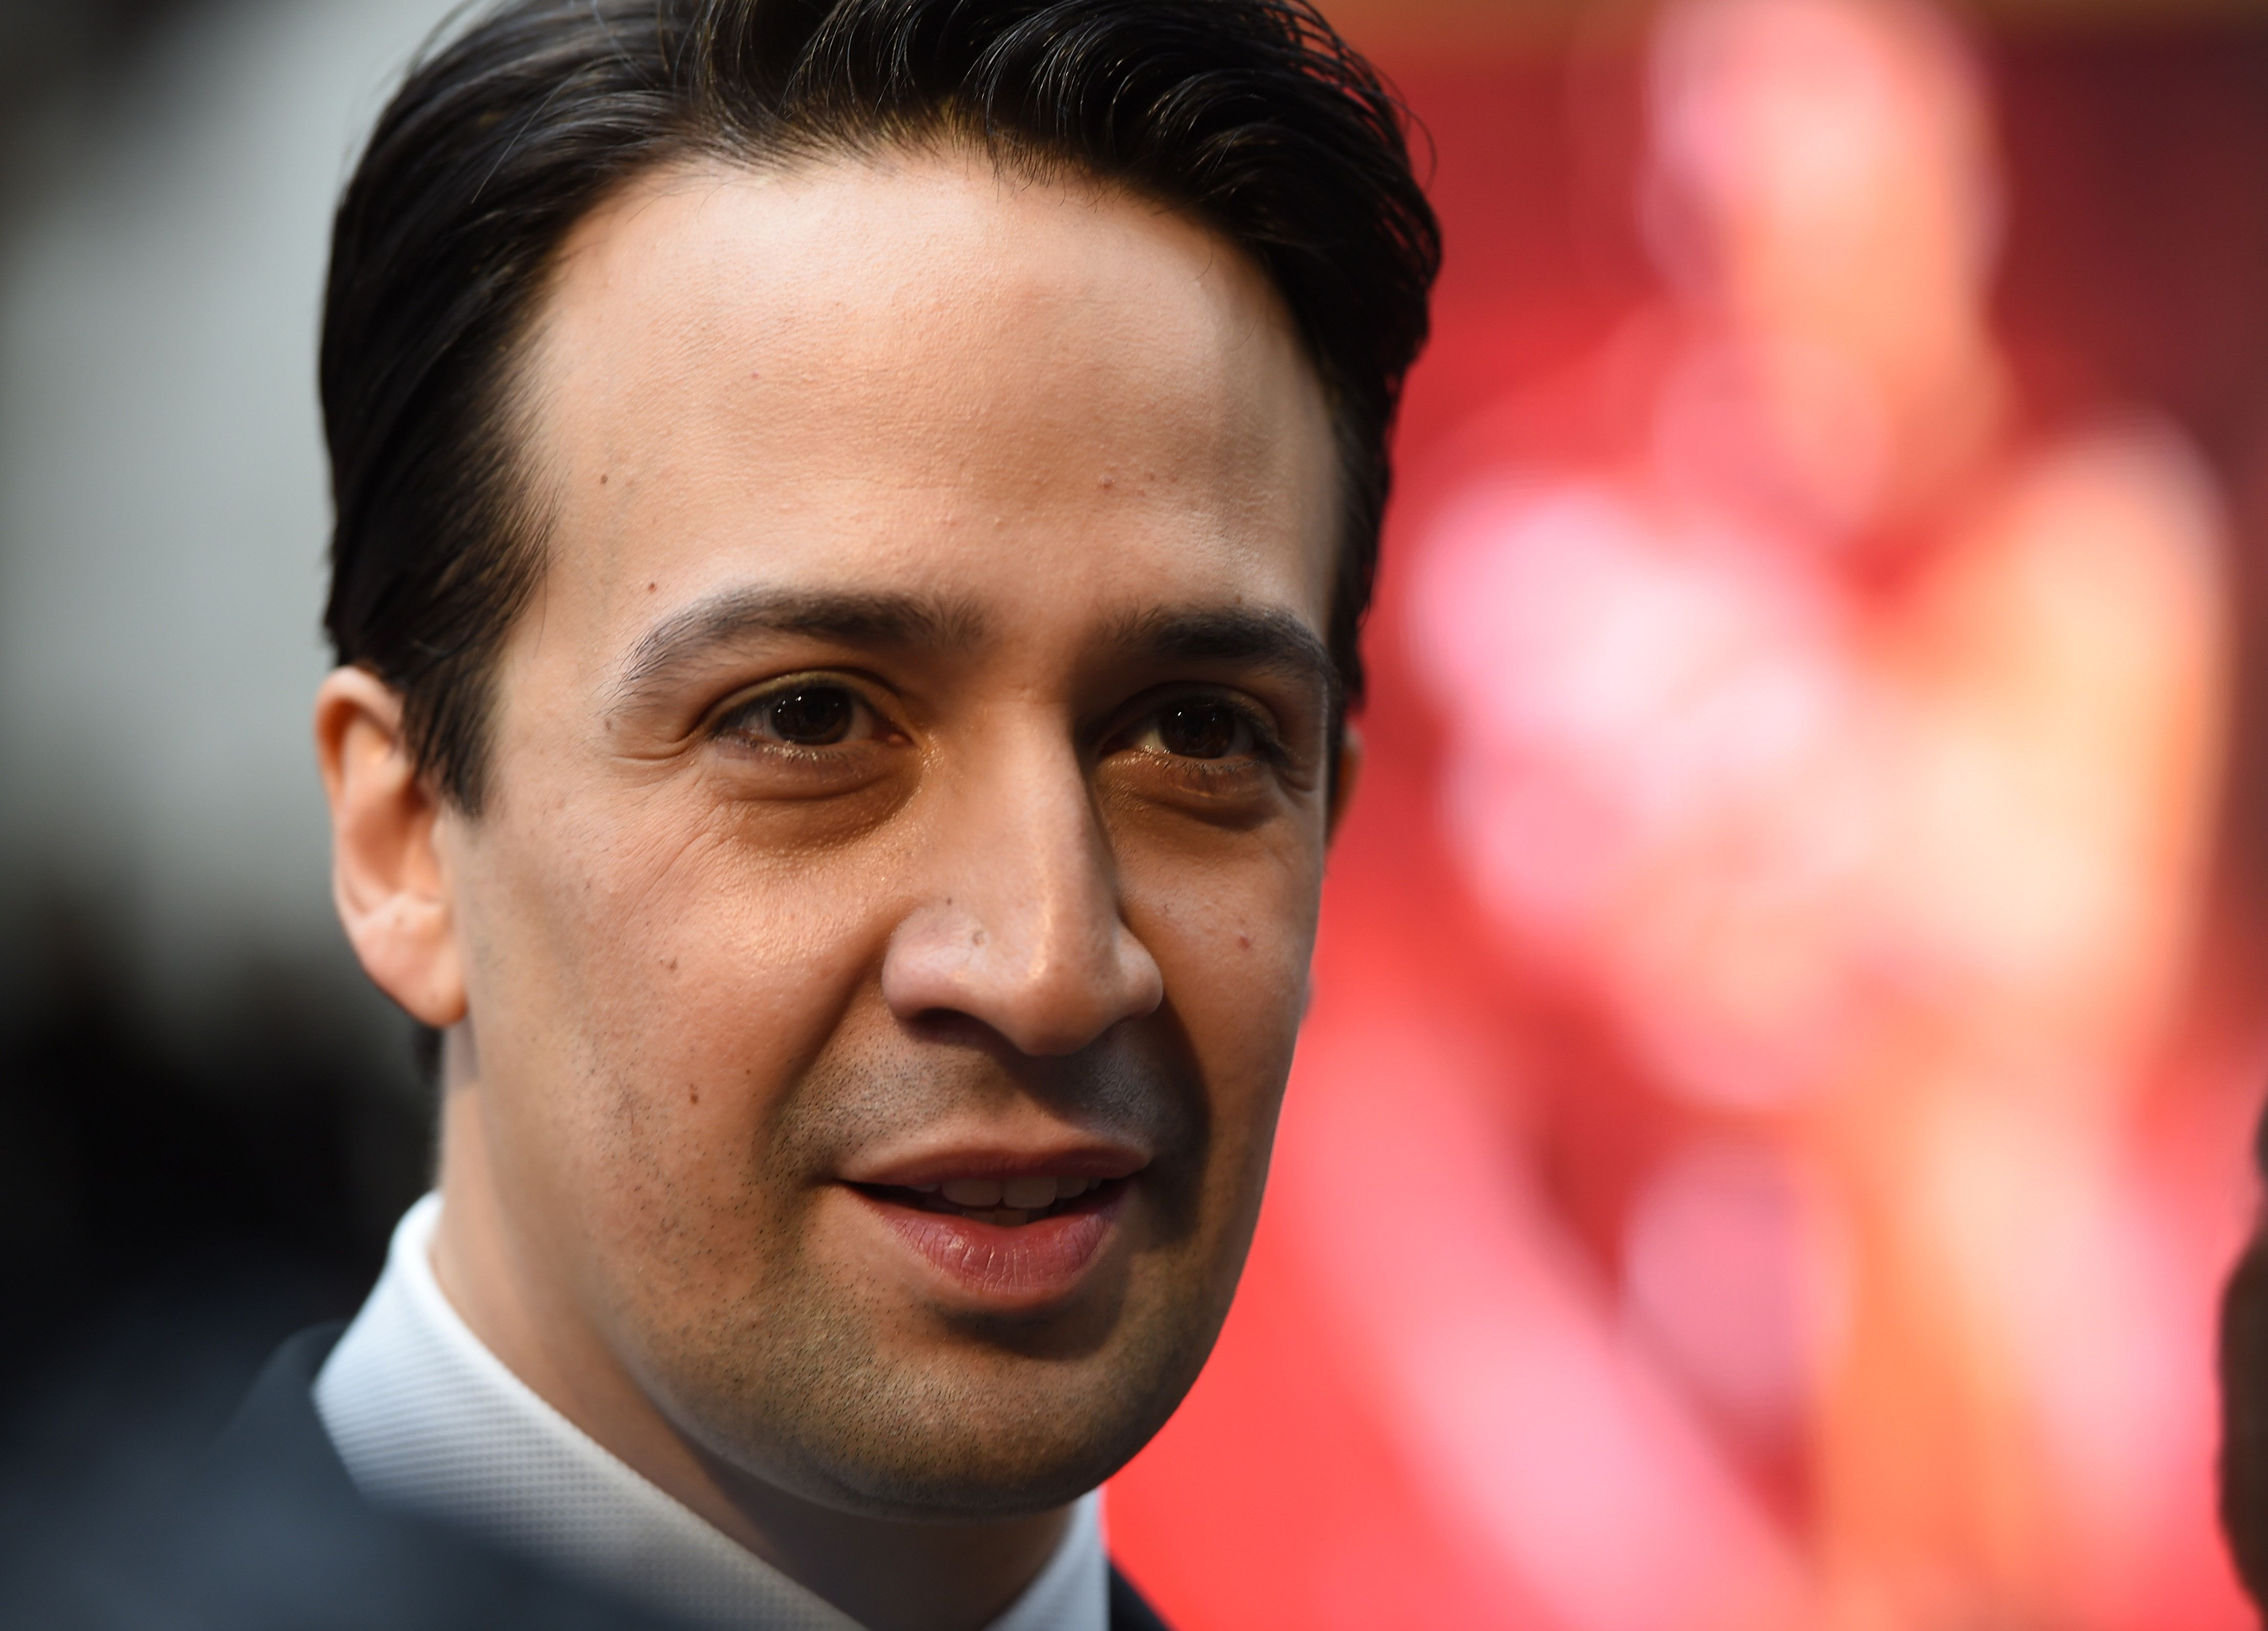 Lin-Manuel Miranda arrives on the red carpet for the 89th Oscars on February 26, 2017 in Hollywood, California.  / AFP / Robyn BECK        (Photo credit should read ROBYN BECK/AFP/Getty Images)